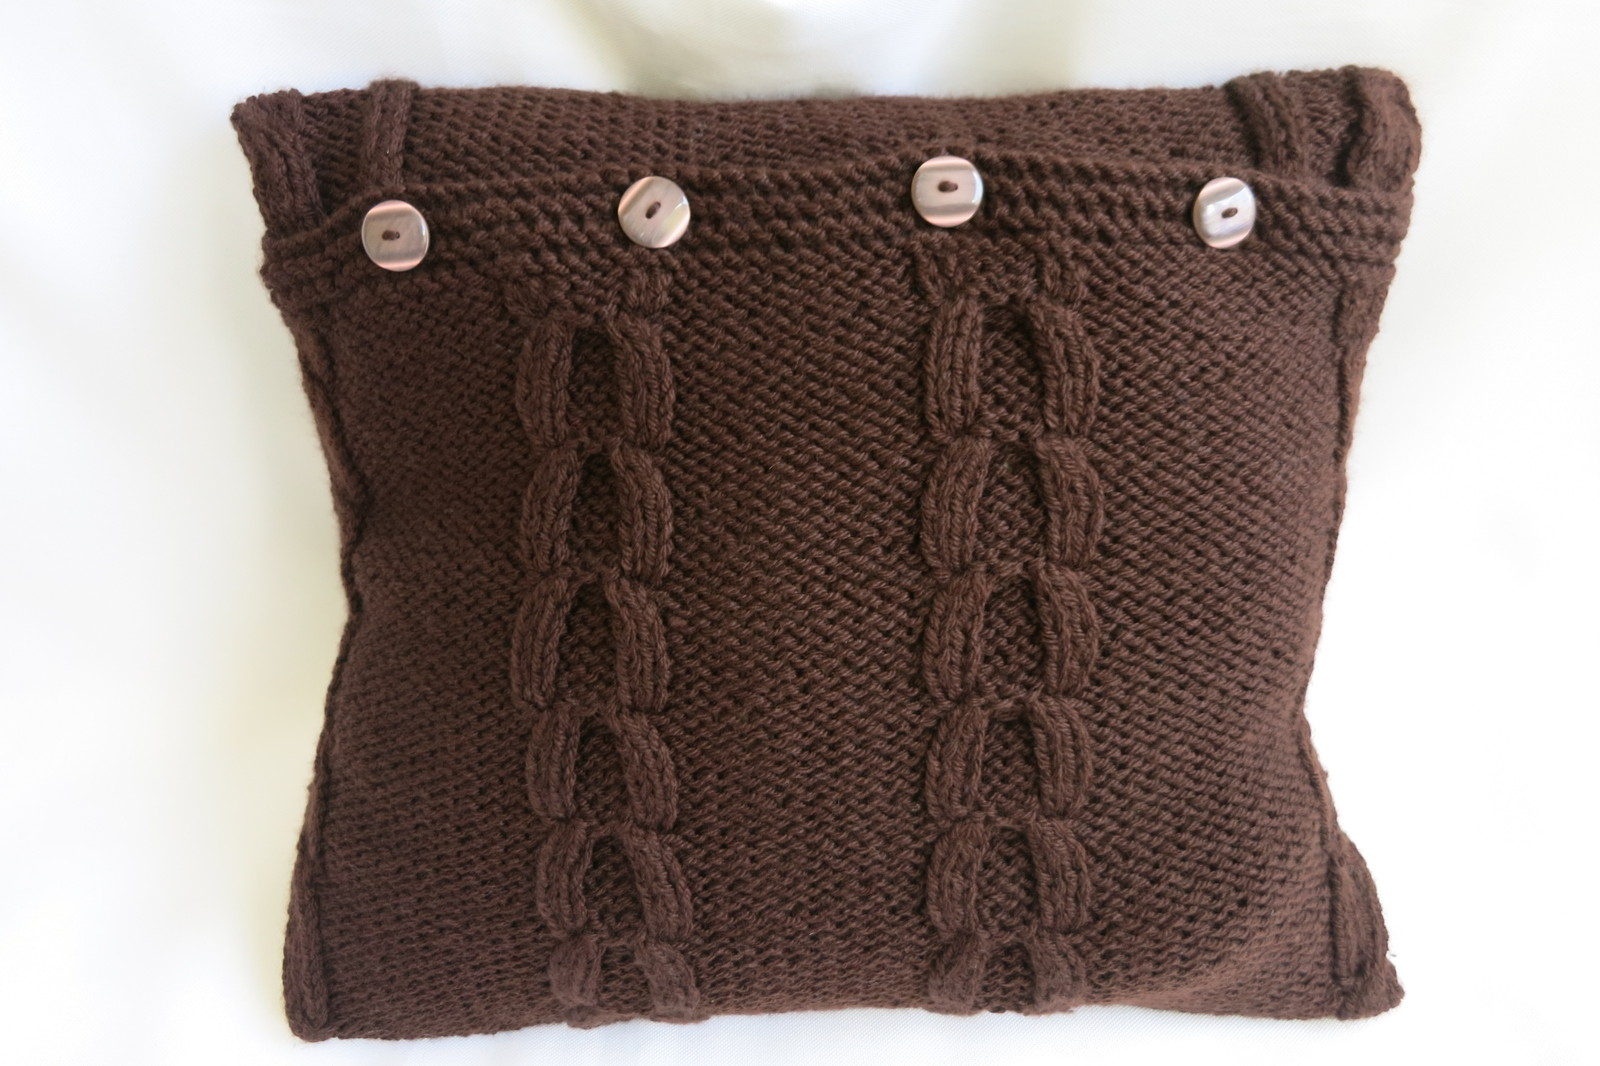 Handmade knitted decorative cushion cover - home decoration - 40 x 40 cm